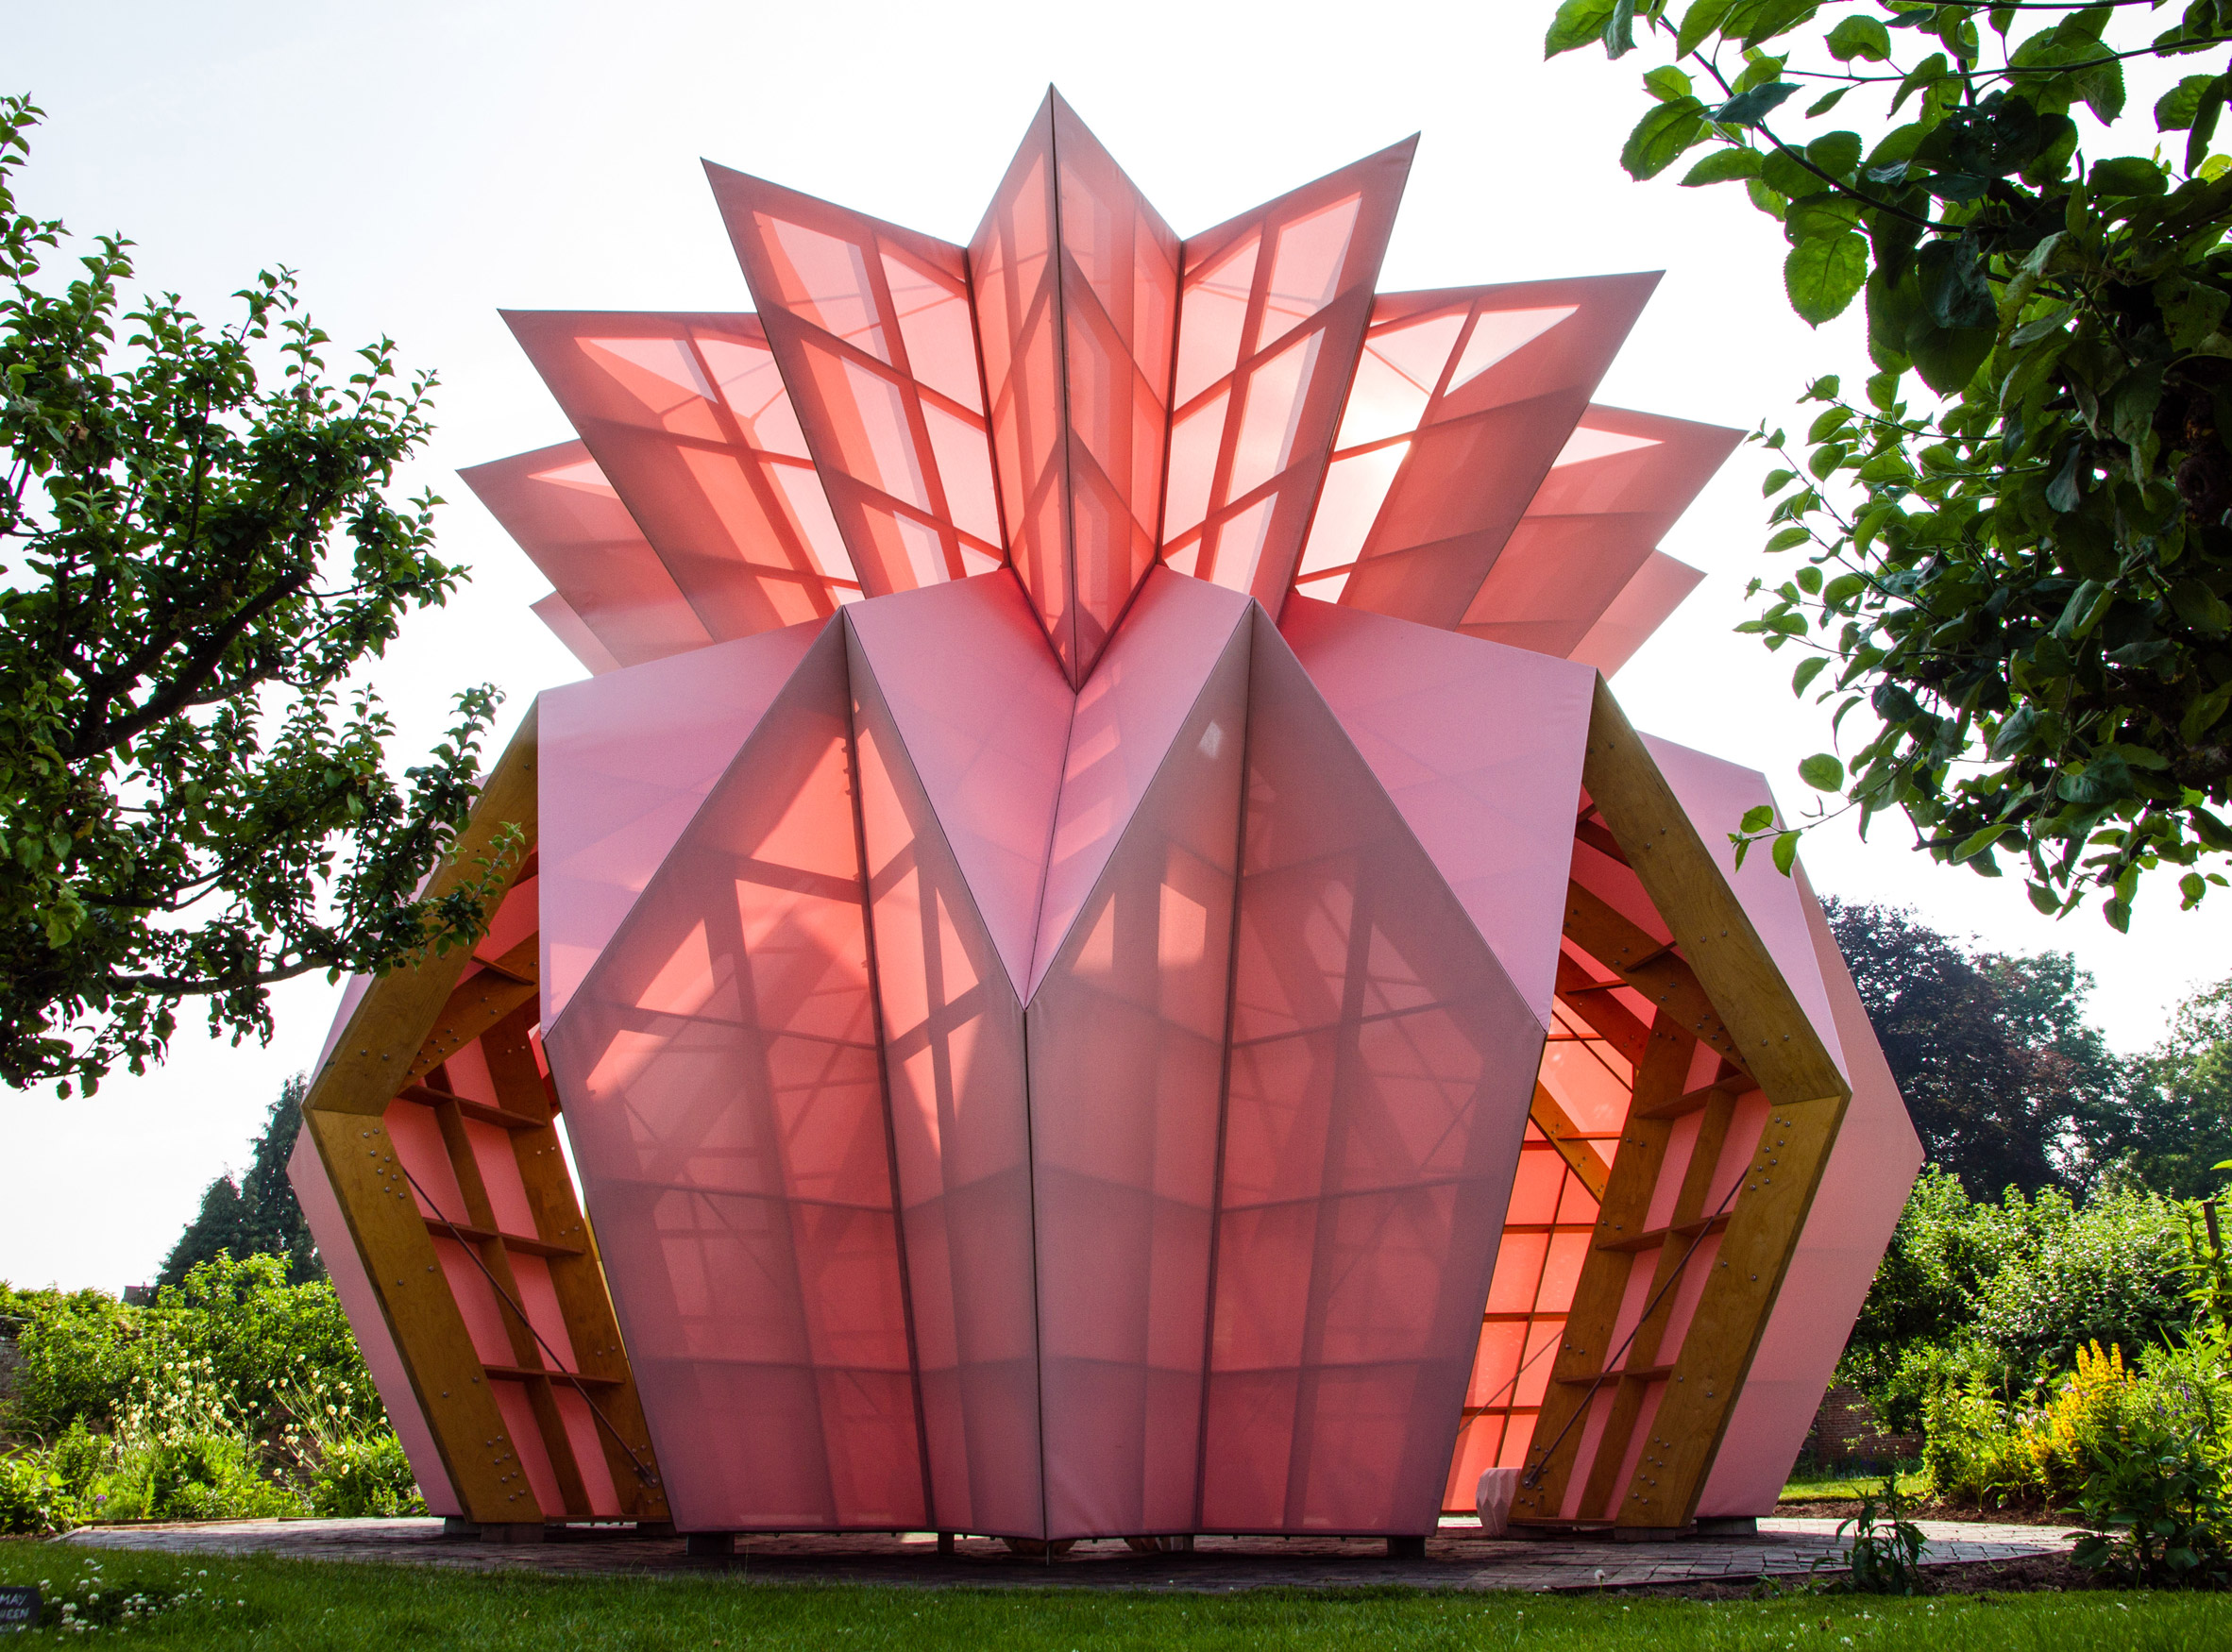 Studio Morison construct origami-like pink pavilion at the National Trust estate, Berrington Hall